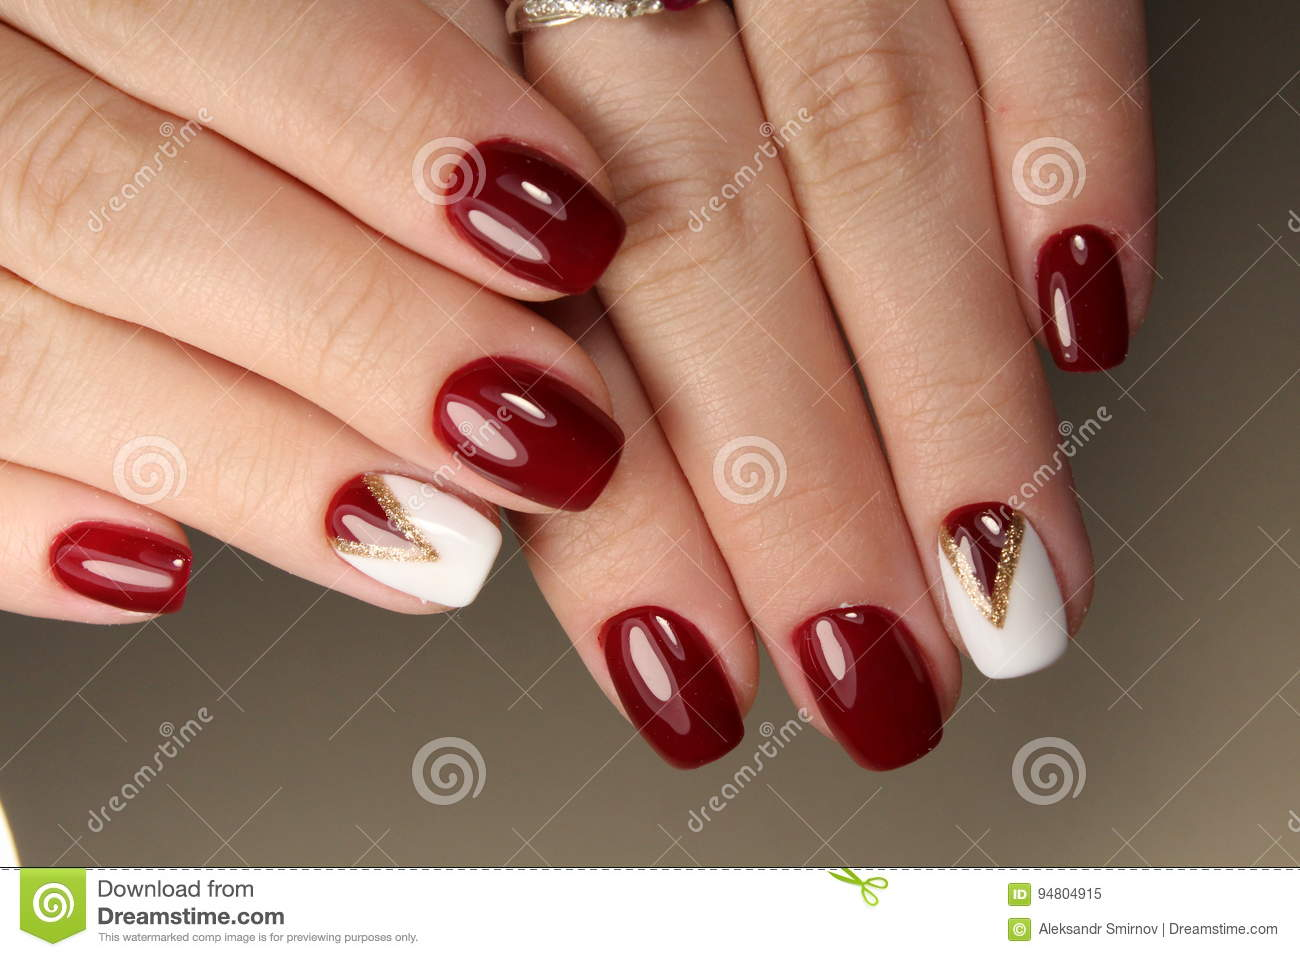 Manicure Design Red And White Stock Image - Image of nails, hands ...